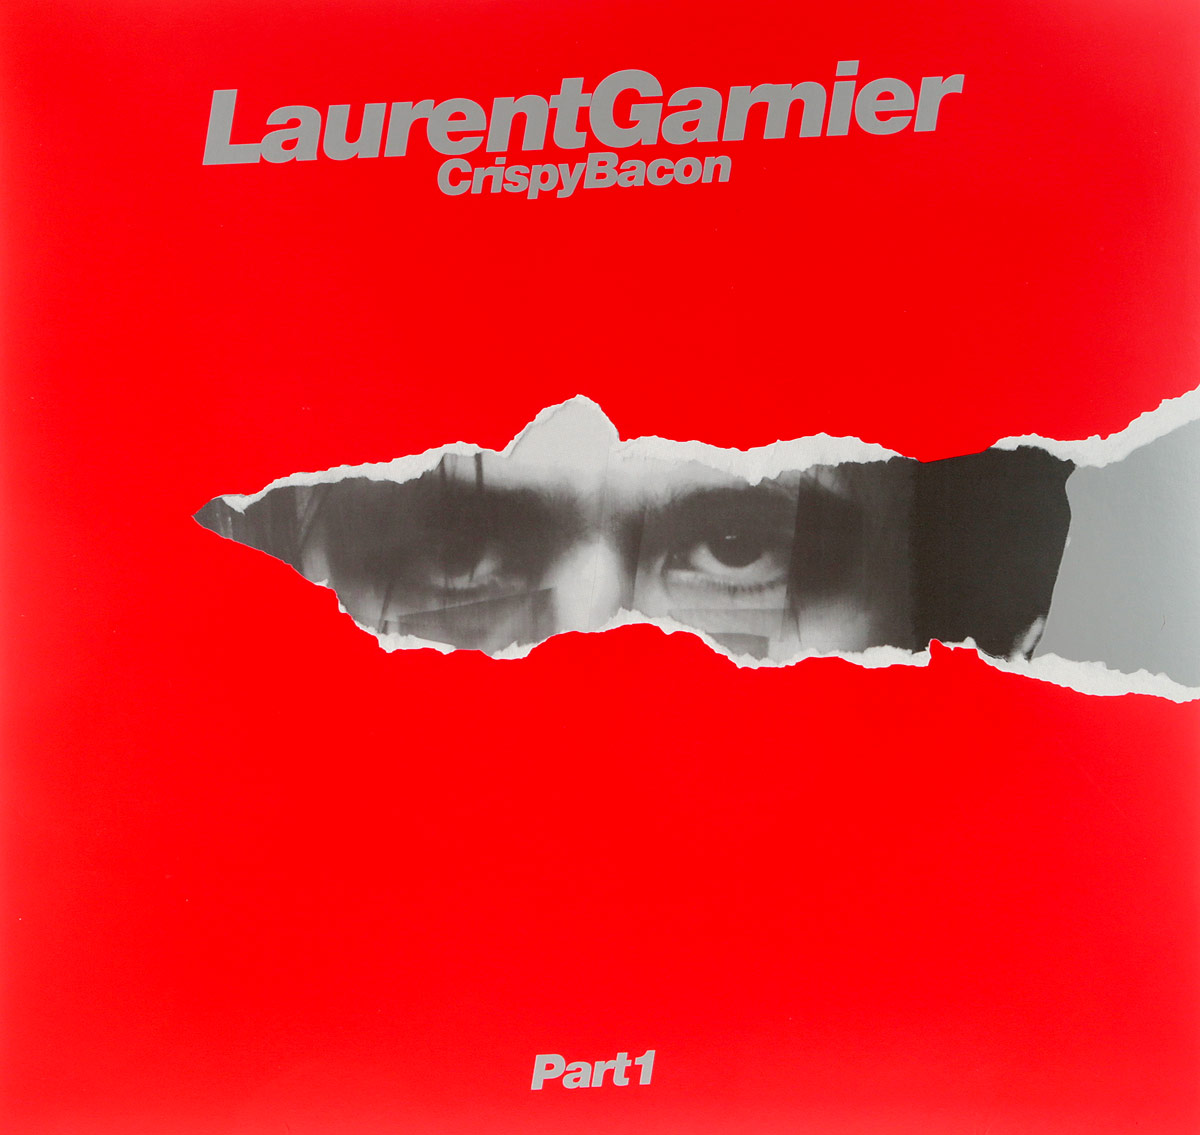 Лоран Гарнье Laurent Garnier. Crispy Bacon. Part 1 (LP) лоран гарнье laurent garnier pay tv lp